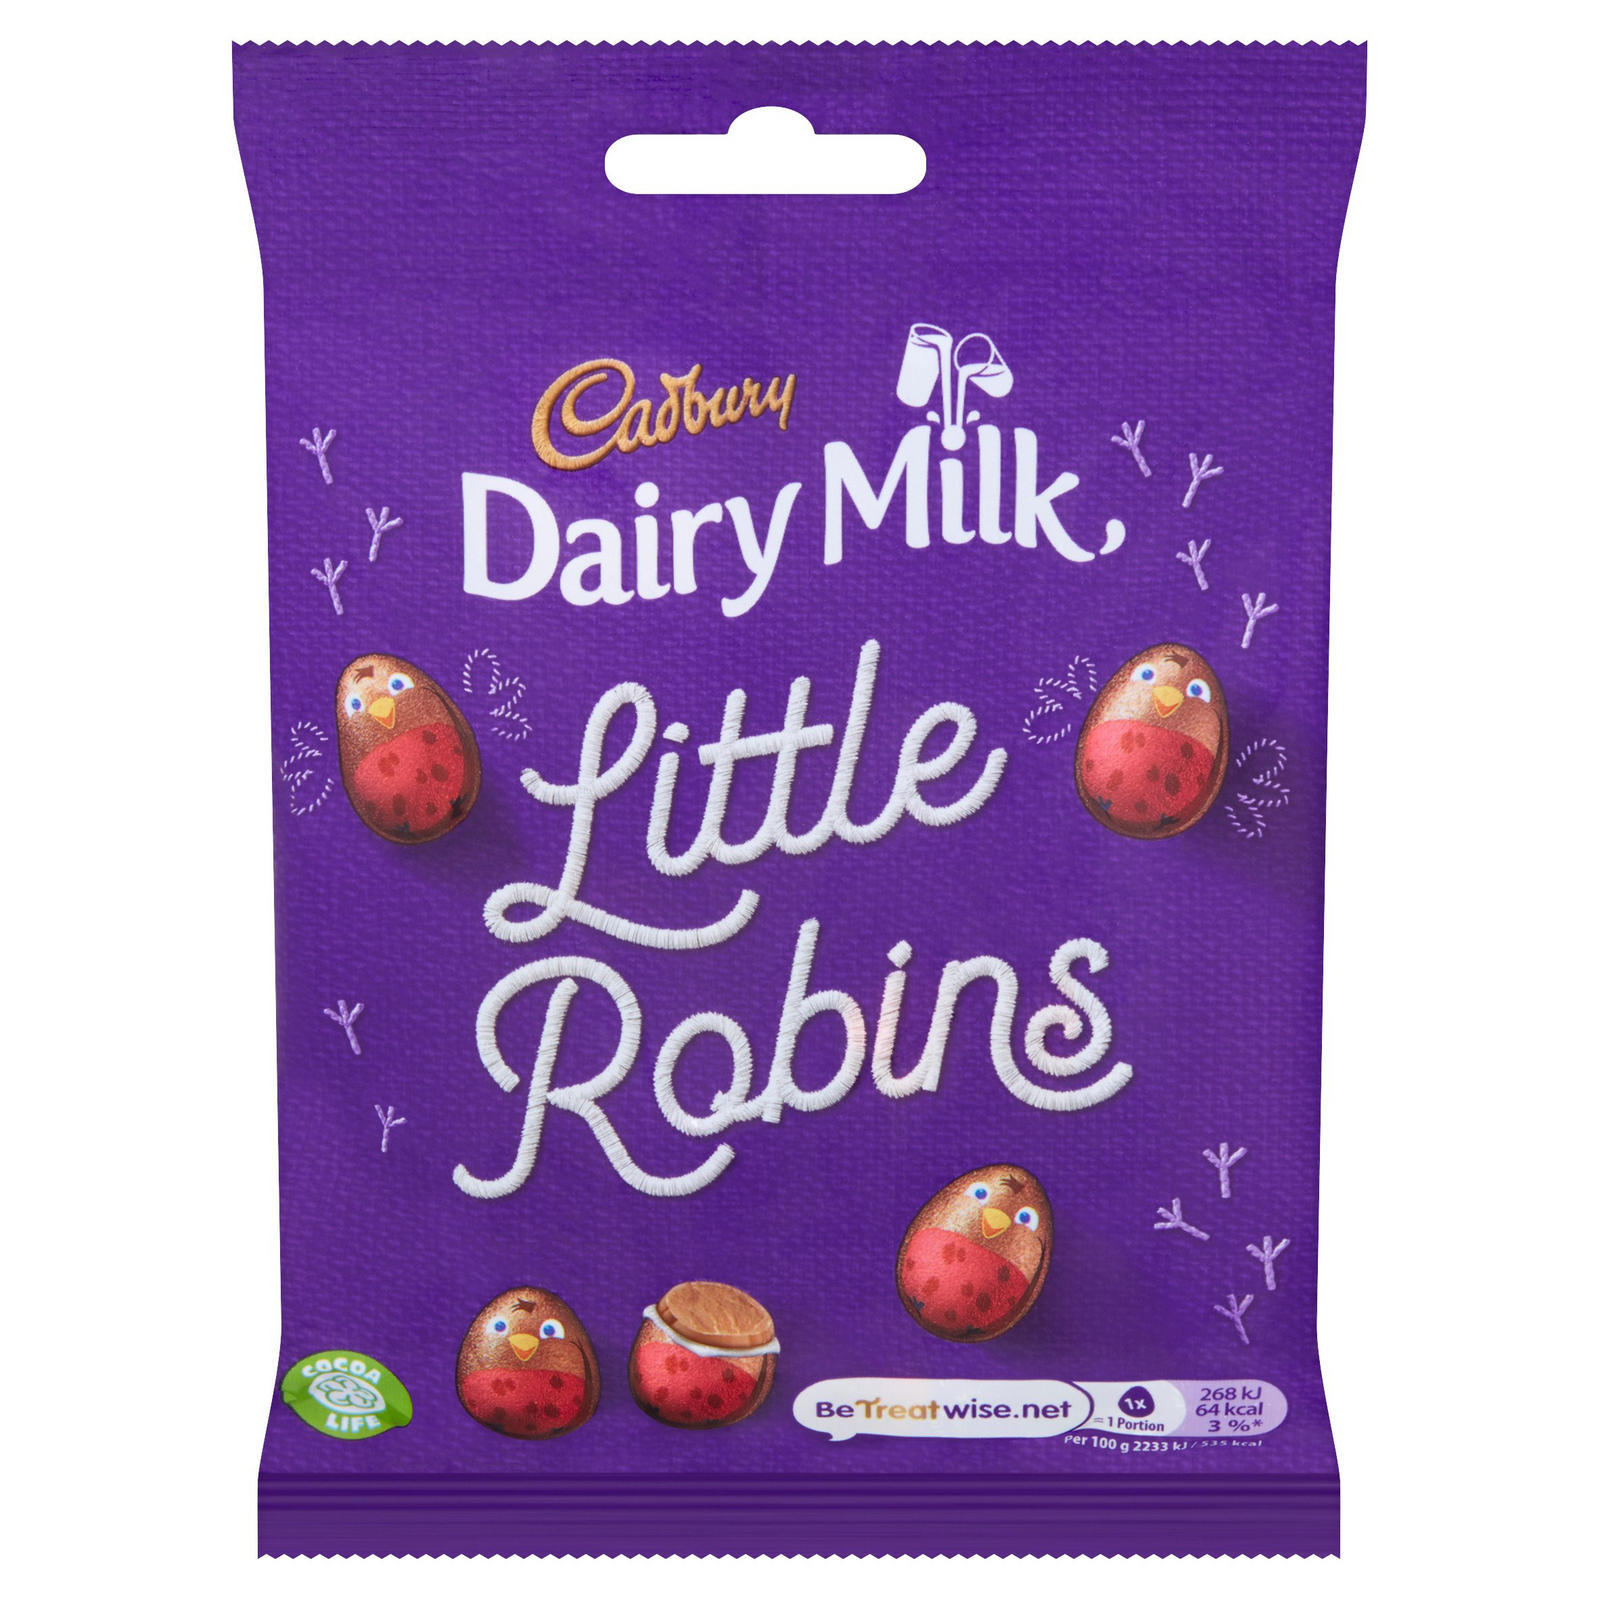 Cadbury Dairy Milk Little Robins image